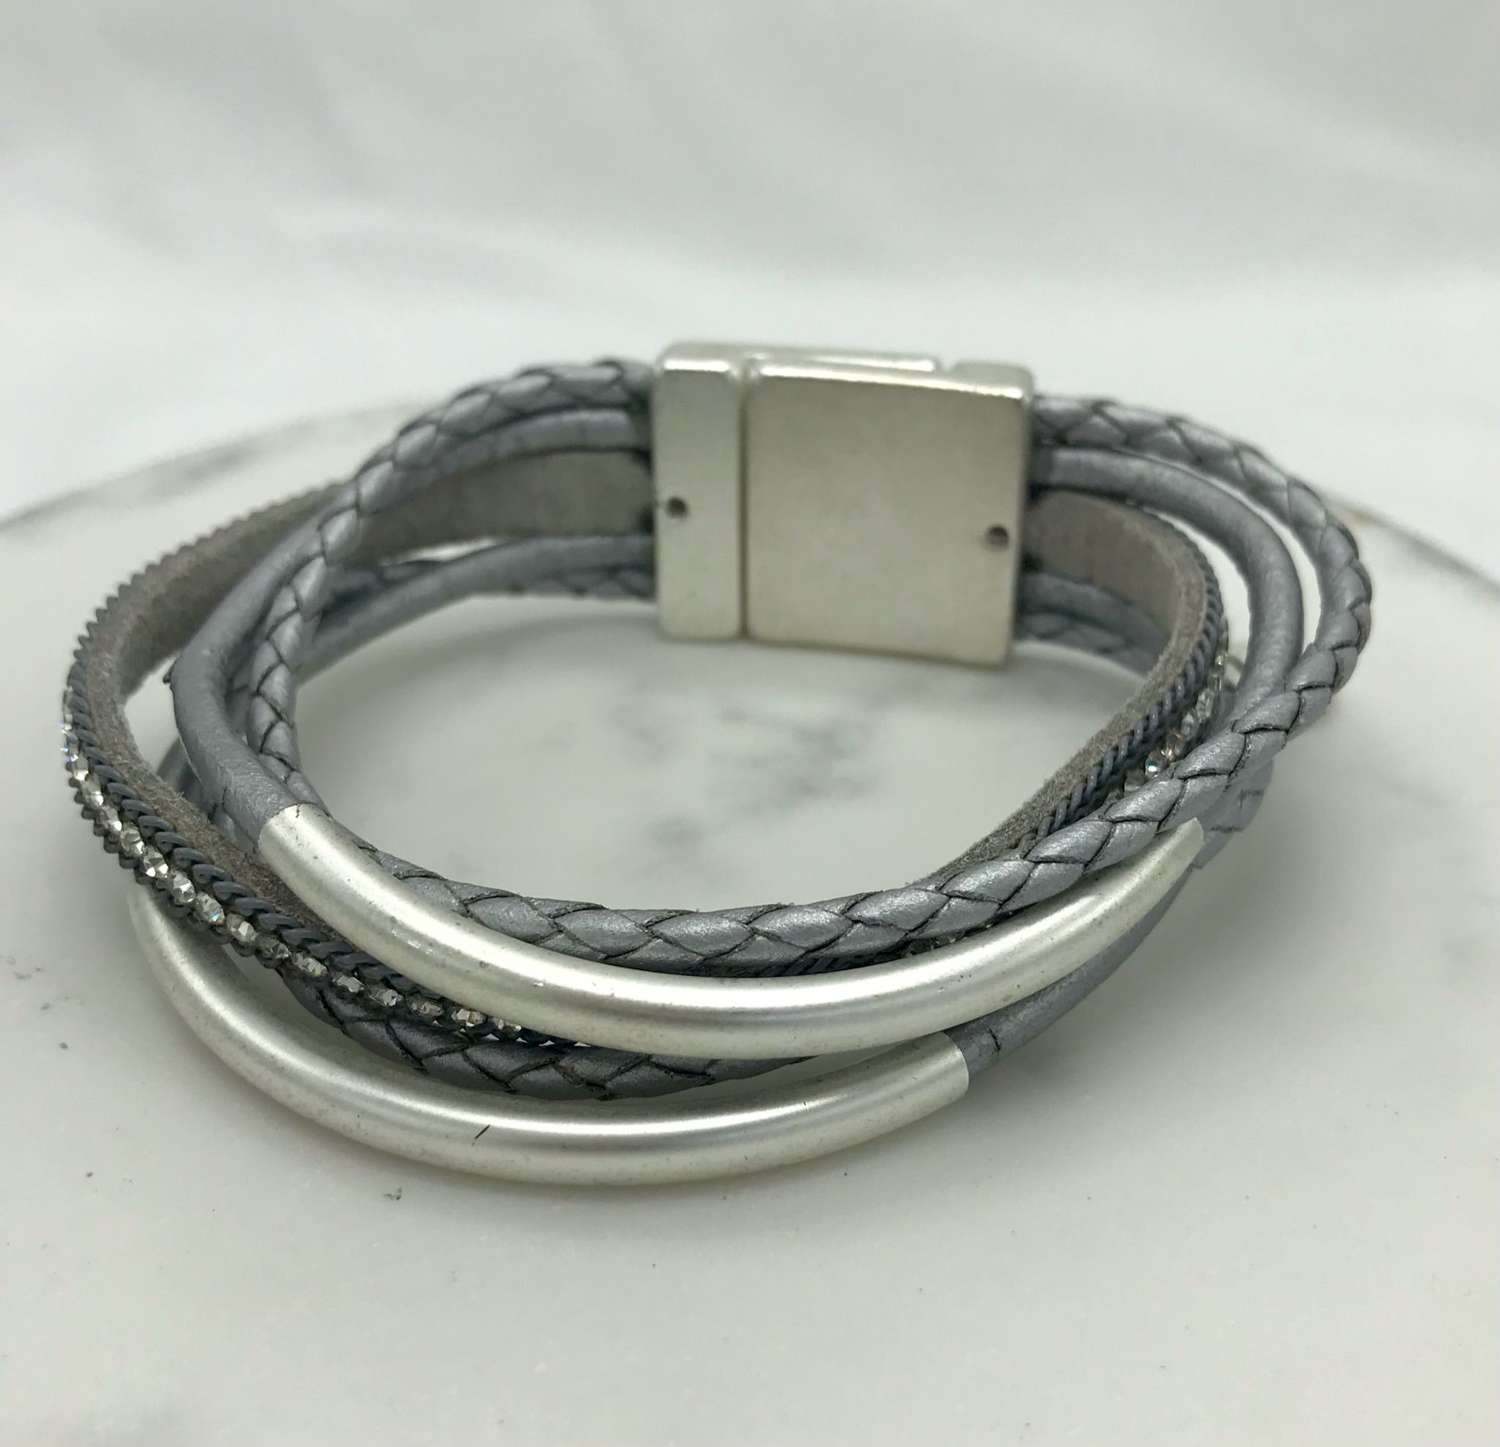 Multi strand silver/grey leather bracelet